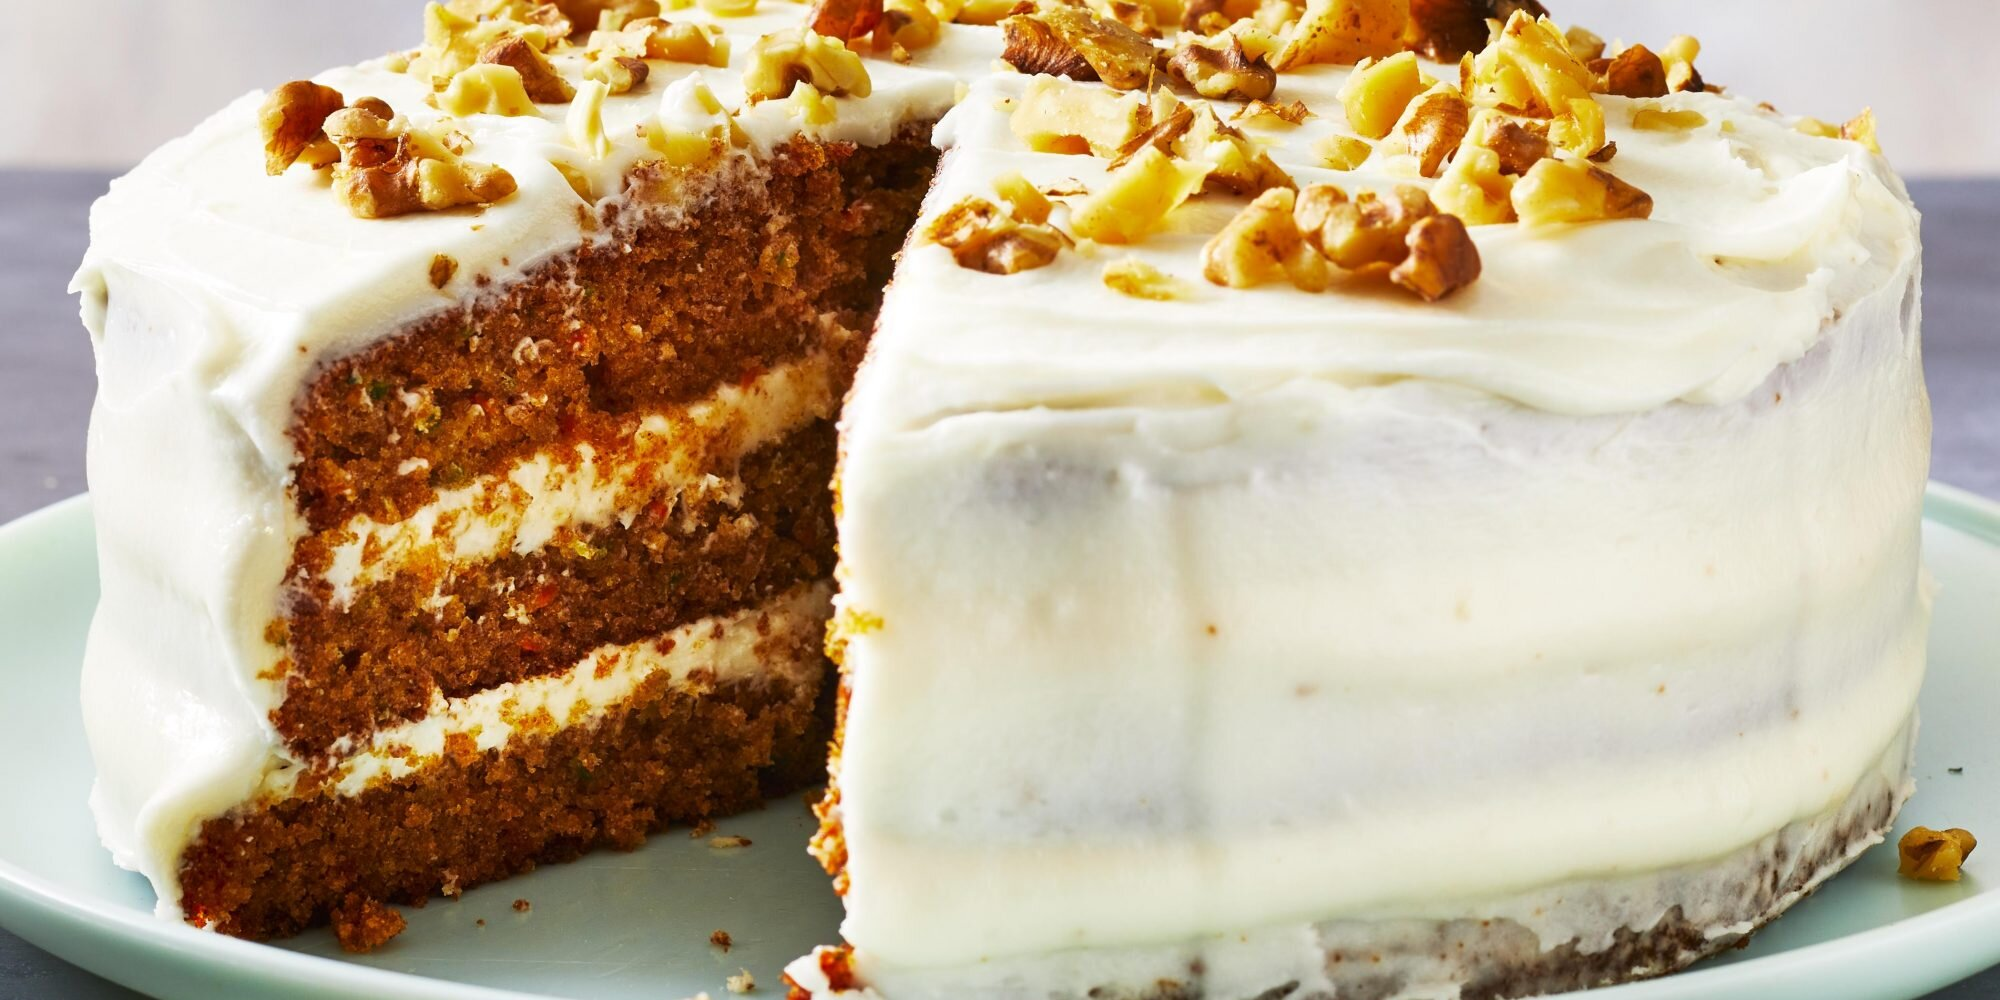 10 traditional carrot cakes for easter